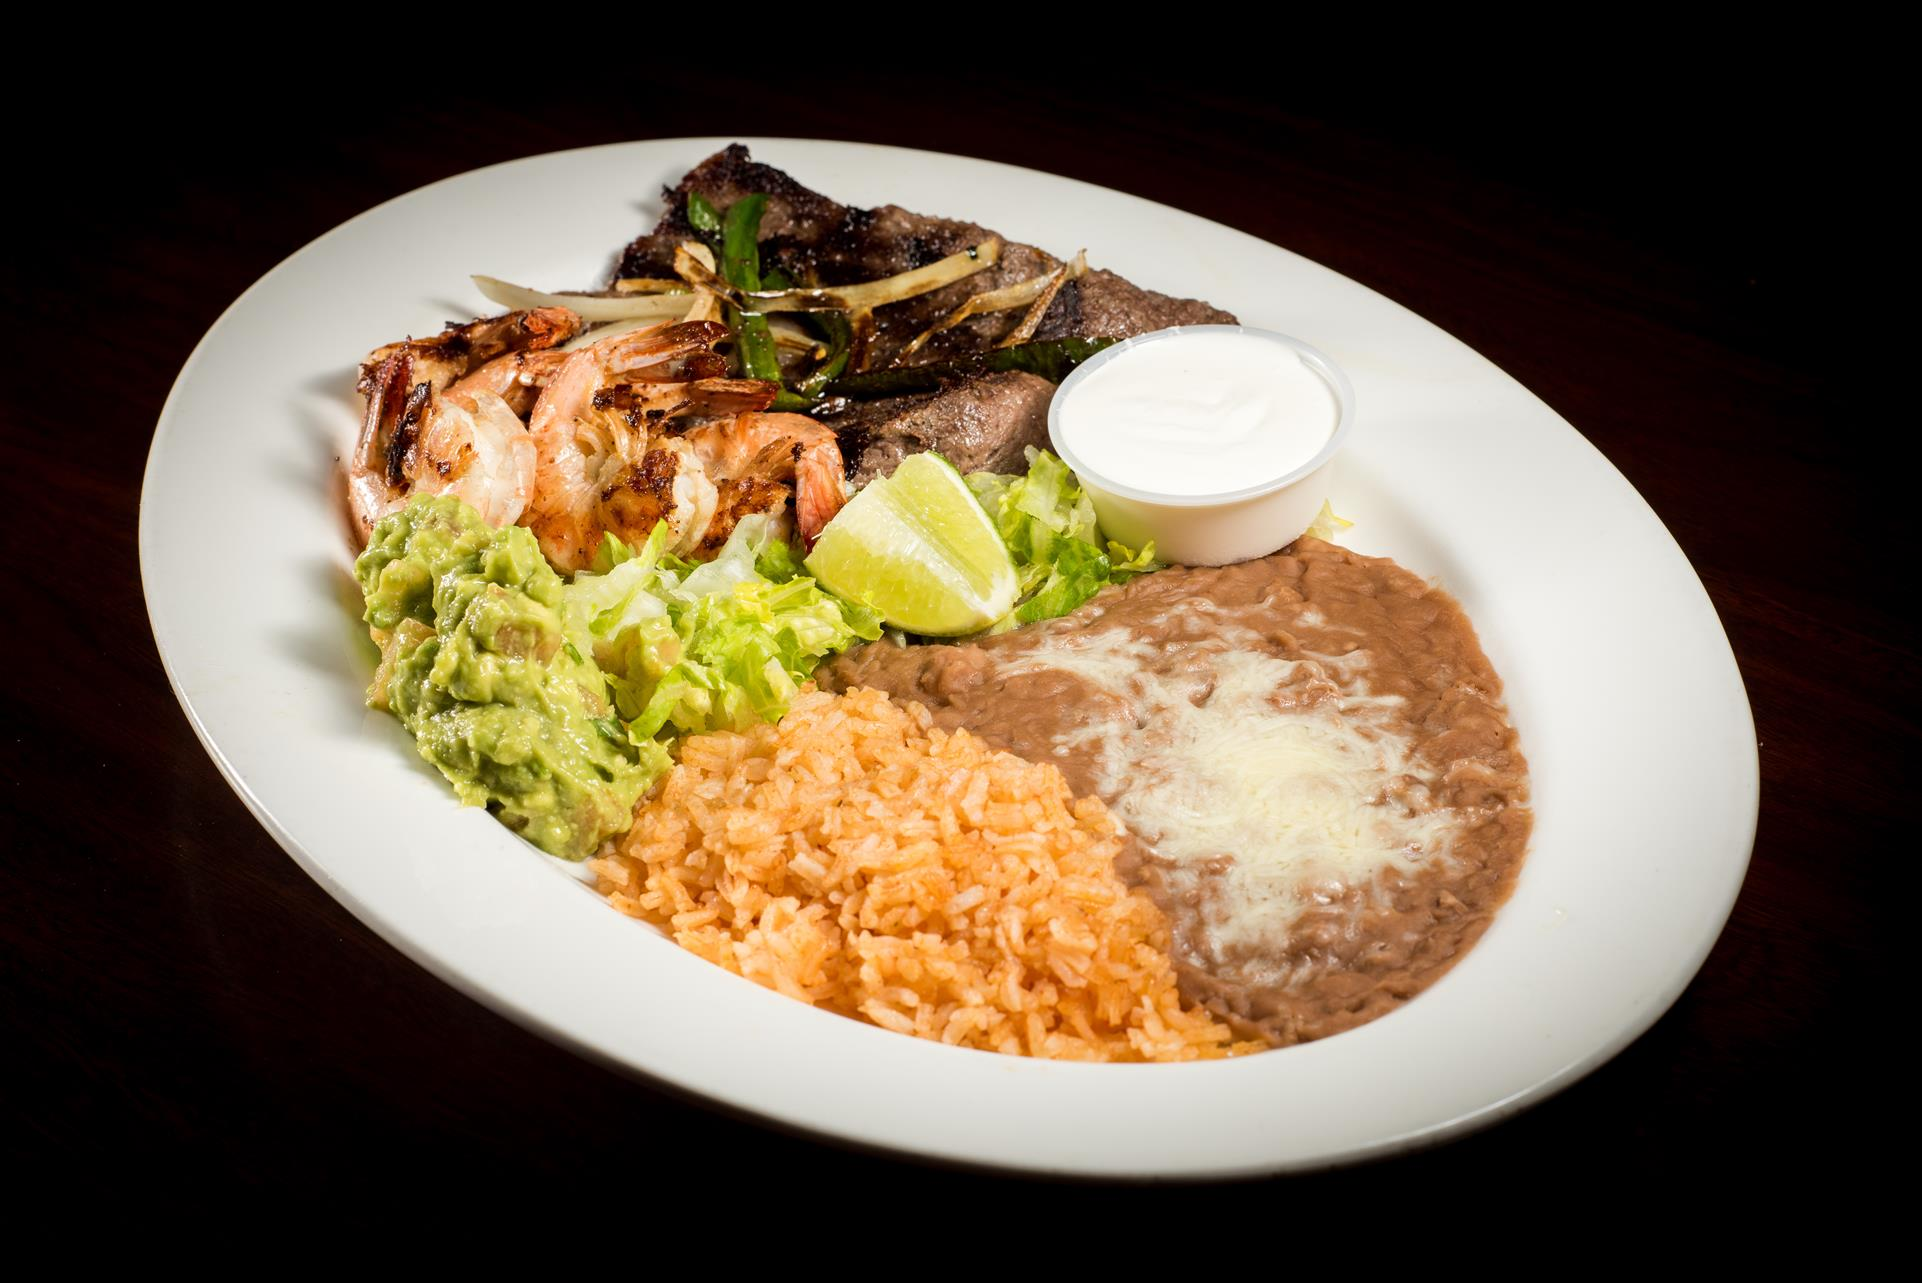 Steak & Shrimps Platillo: Grilled shrimp and grilled thin sliced of steak. Served with guacamole and sour cream